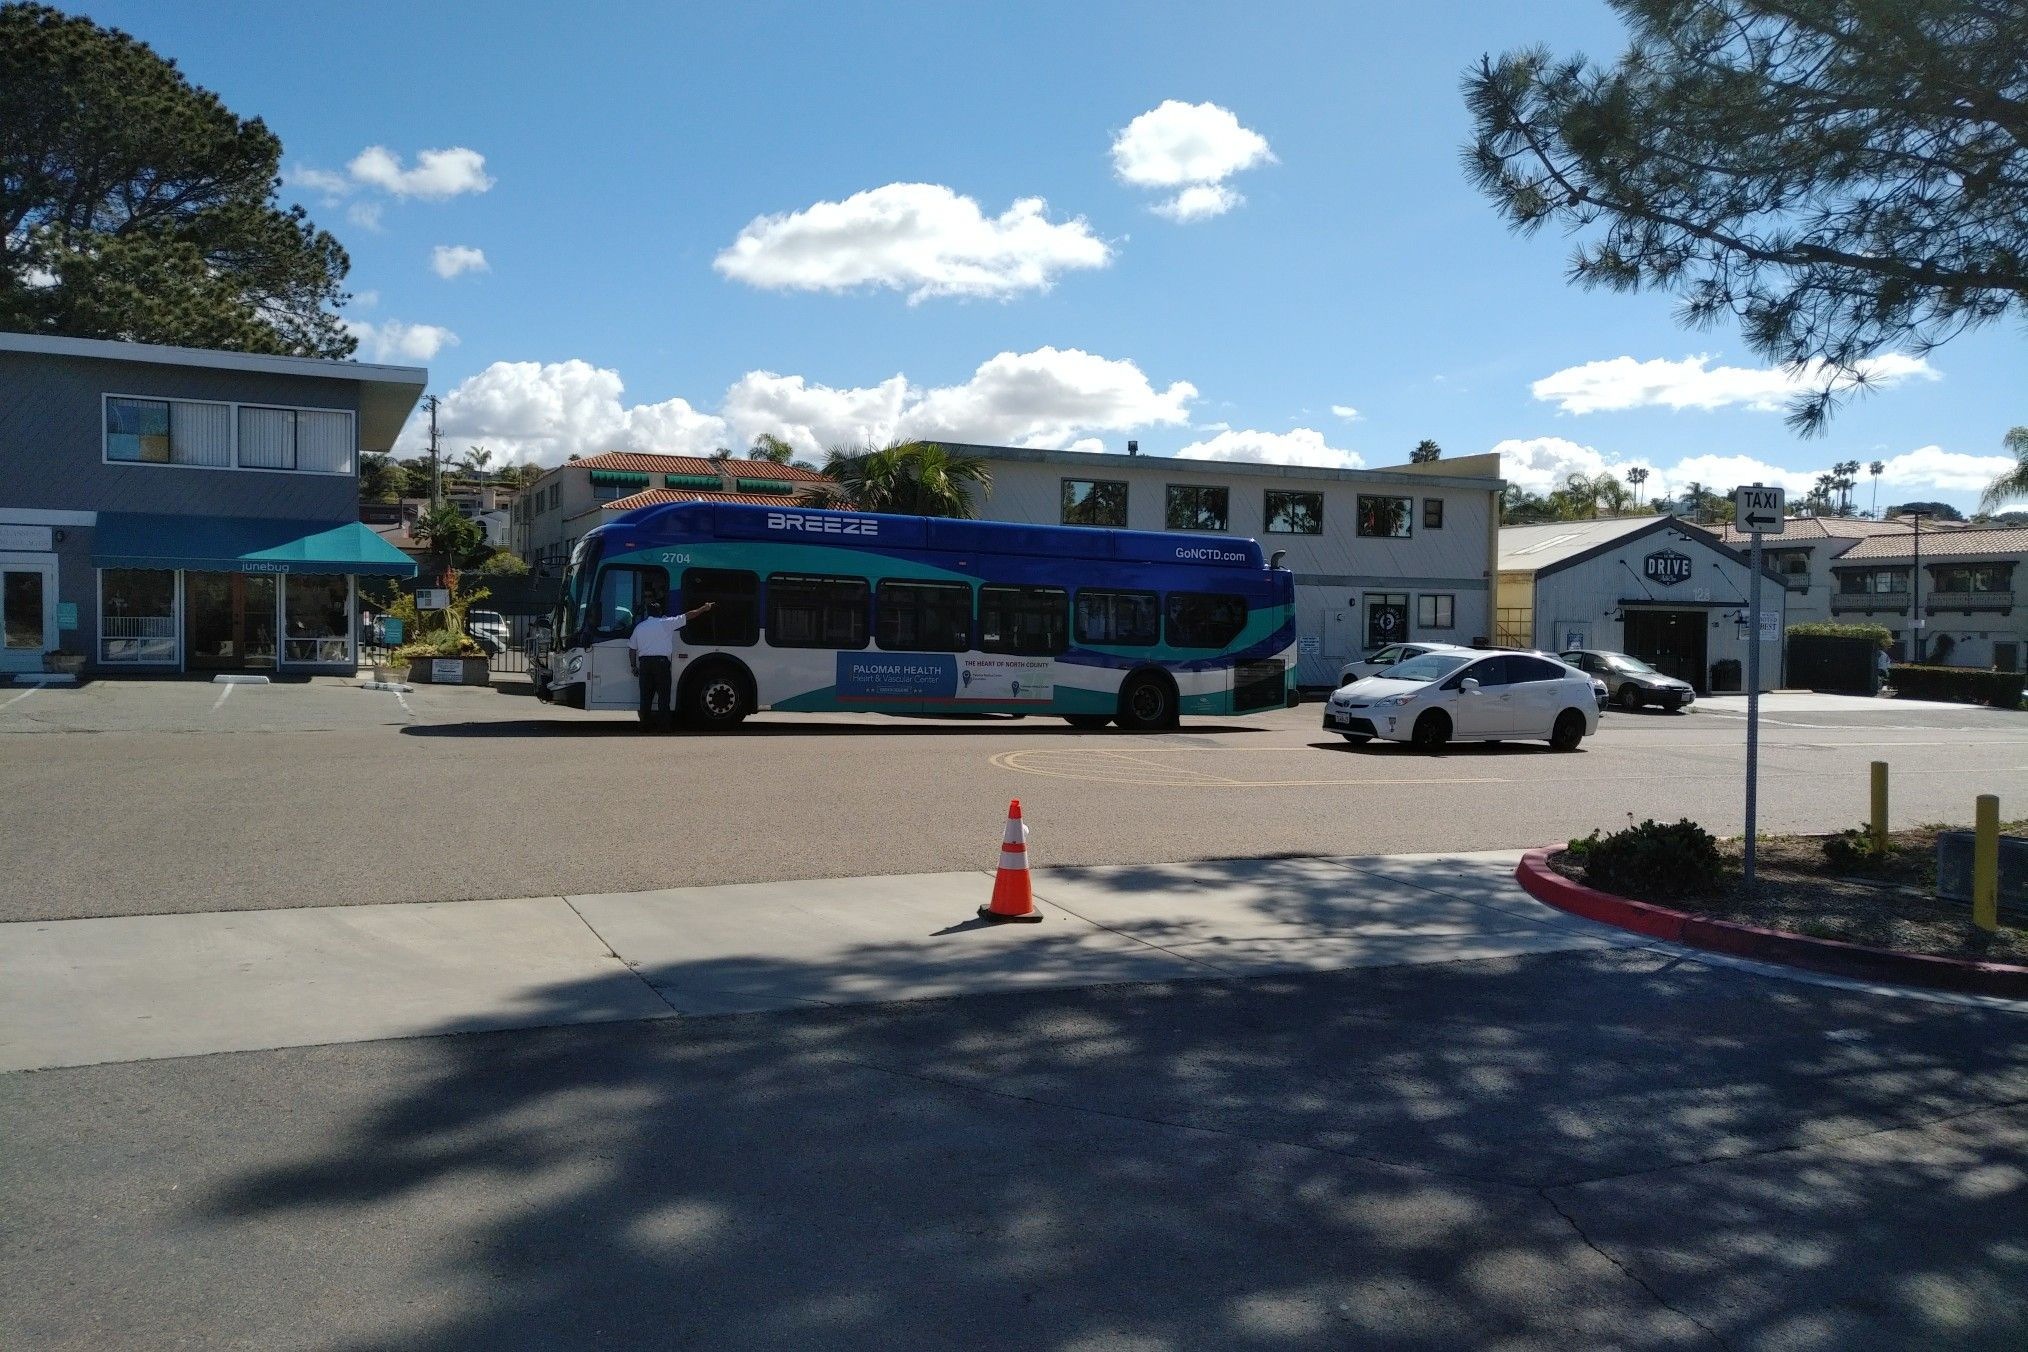 Yet another view of Breeze Bus 2704 at Solana Beach. Breeze Route ...